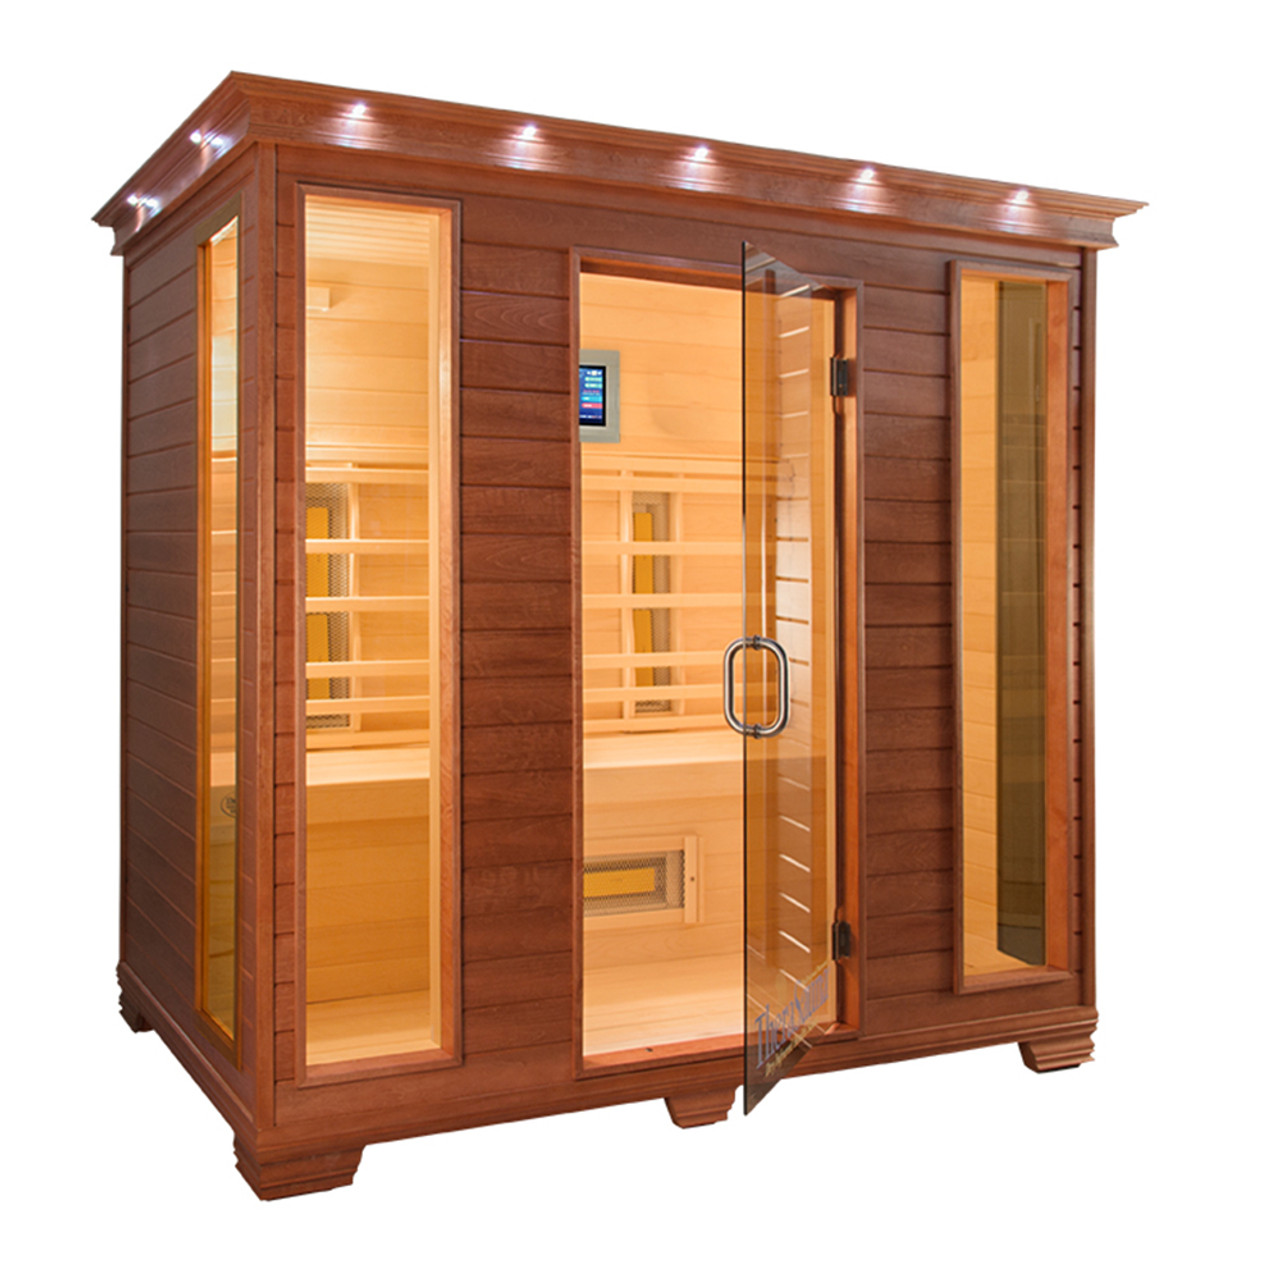 TheraSauna TS8454 Far Infrared Sauna (Pictured in Mahogany Finish)